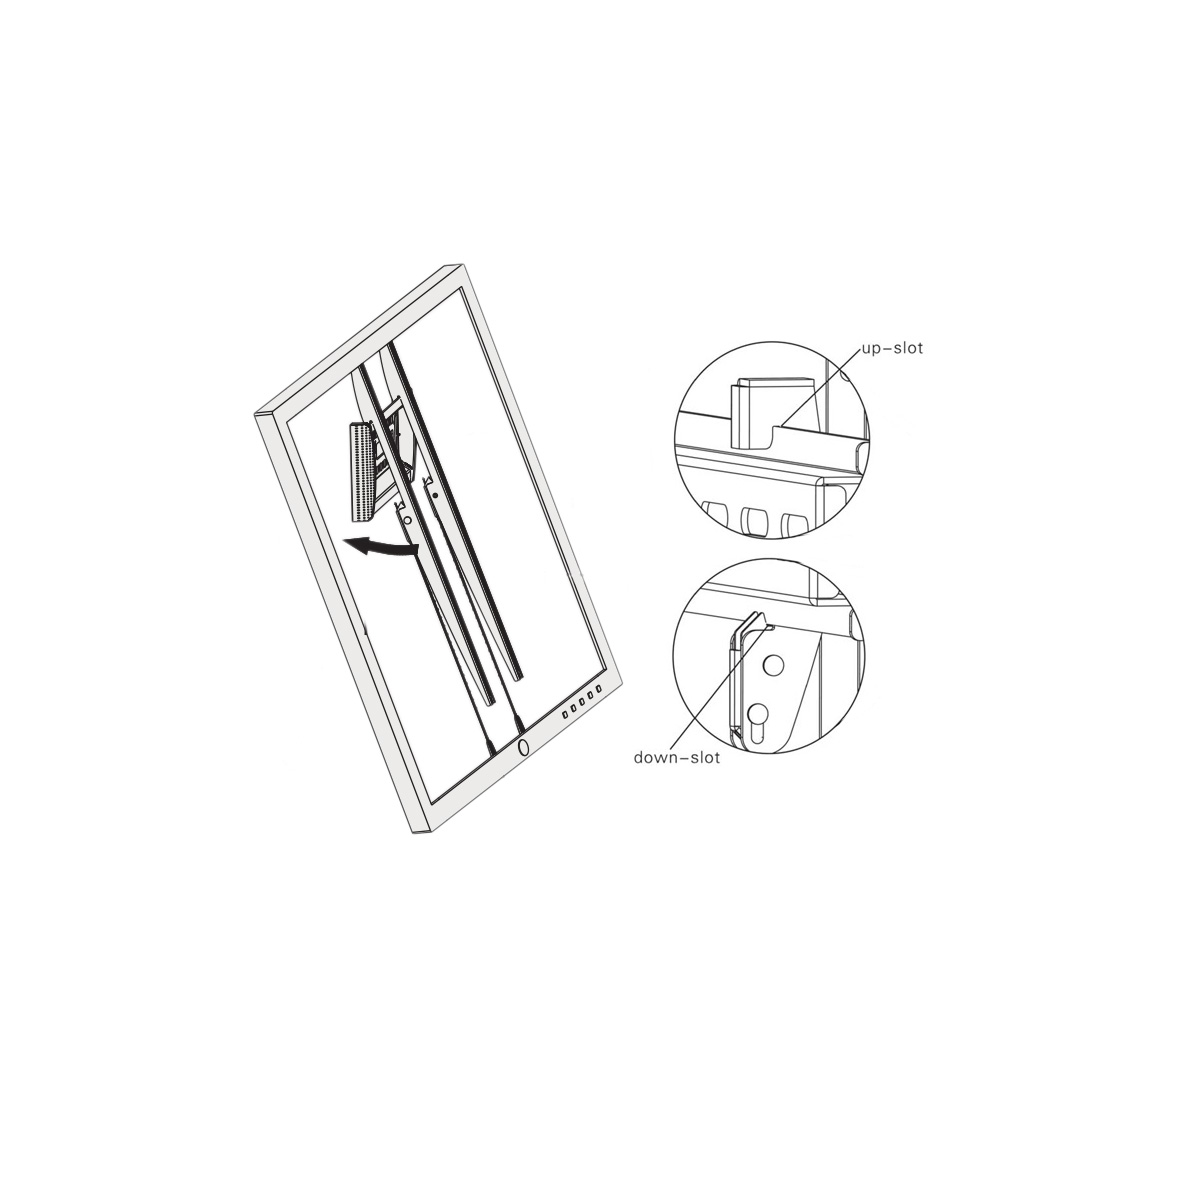 Boost Universal Wmf Fixed Tv Mount For 40 To 65 Tvs